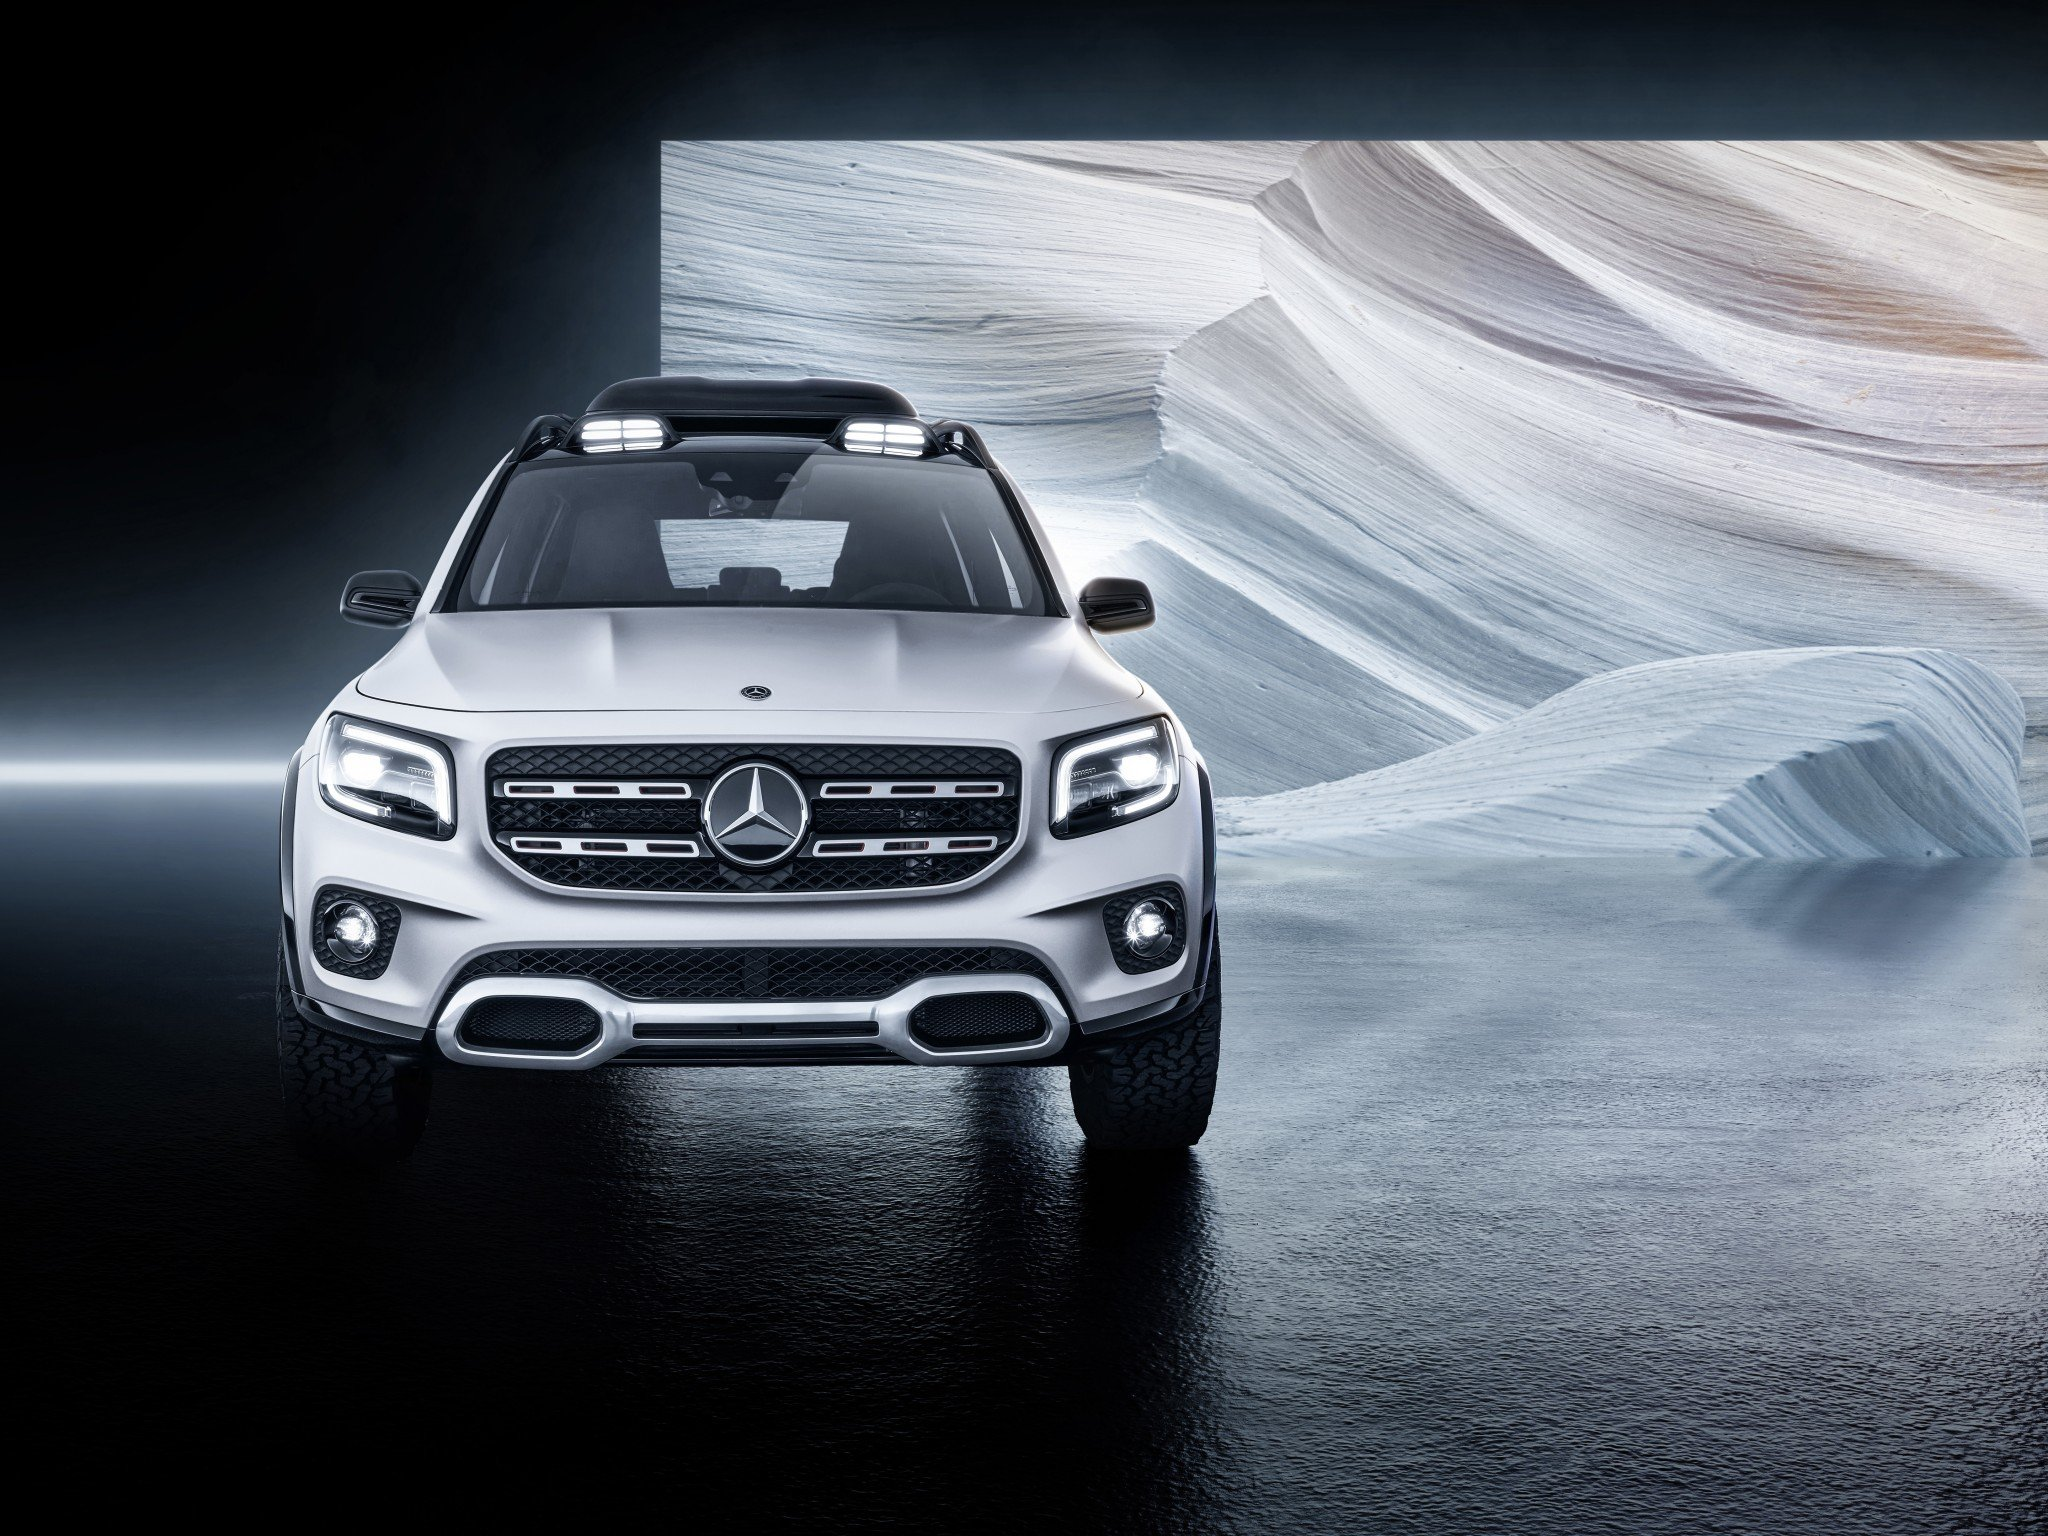 Download 2048x1536 Mercedes benz Glb Class Suv Cars White Front 2048x1536